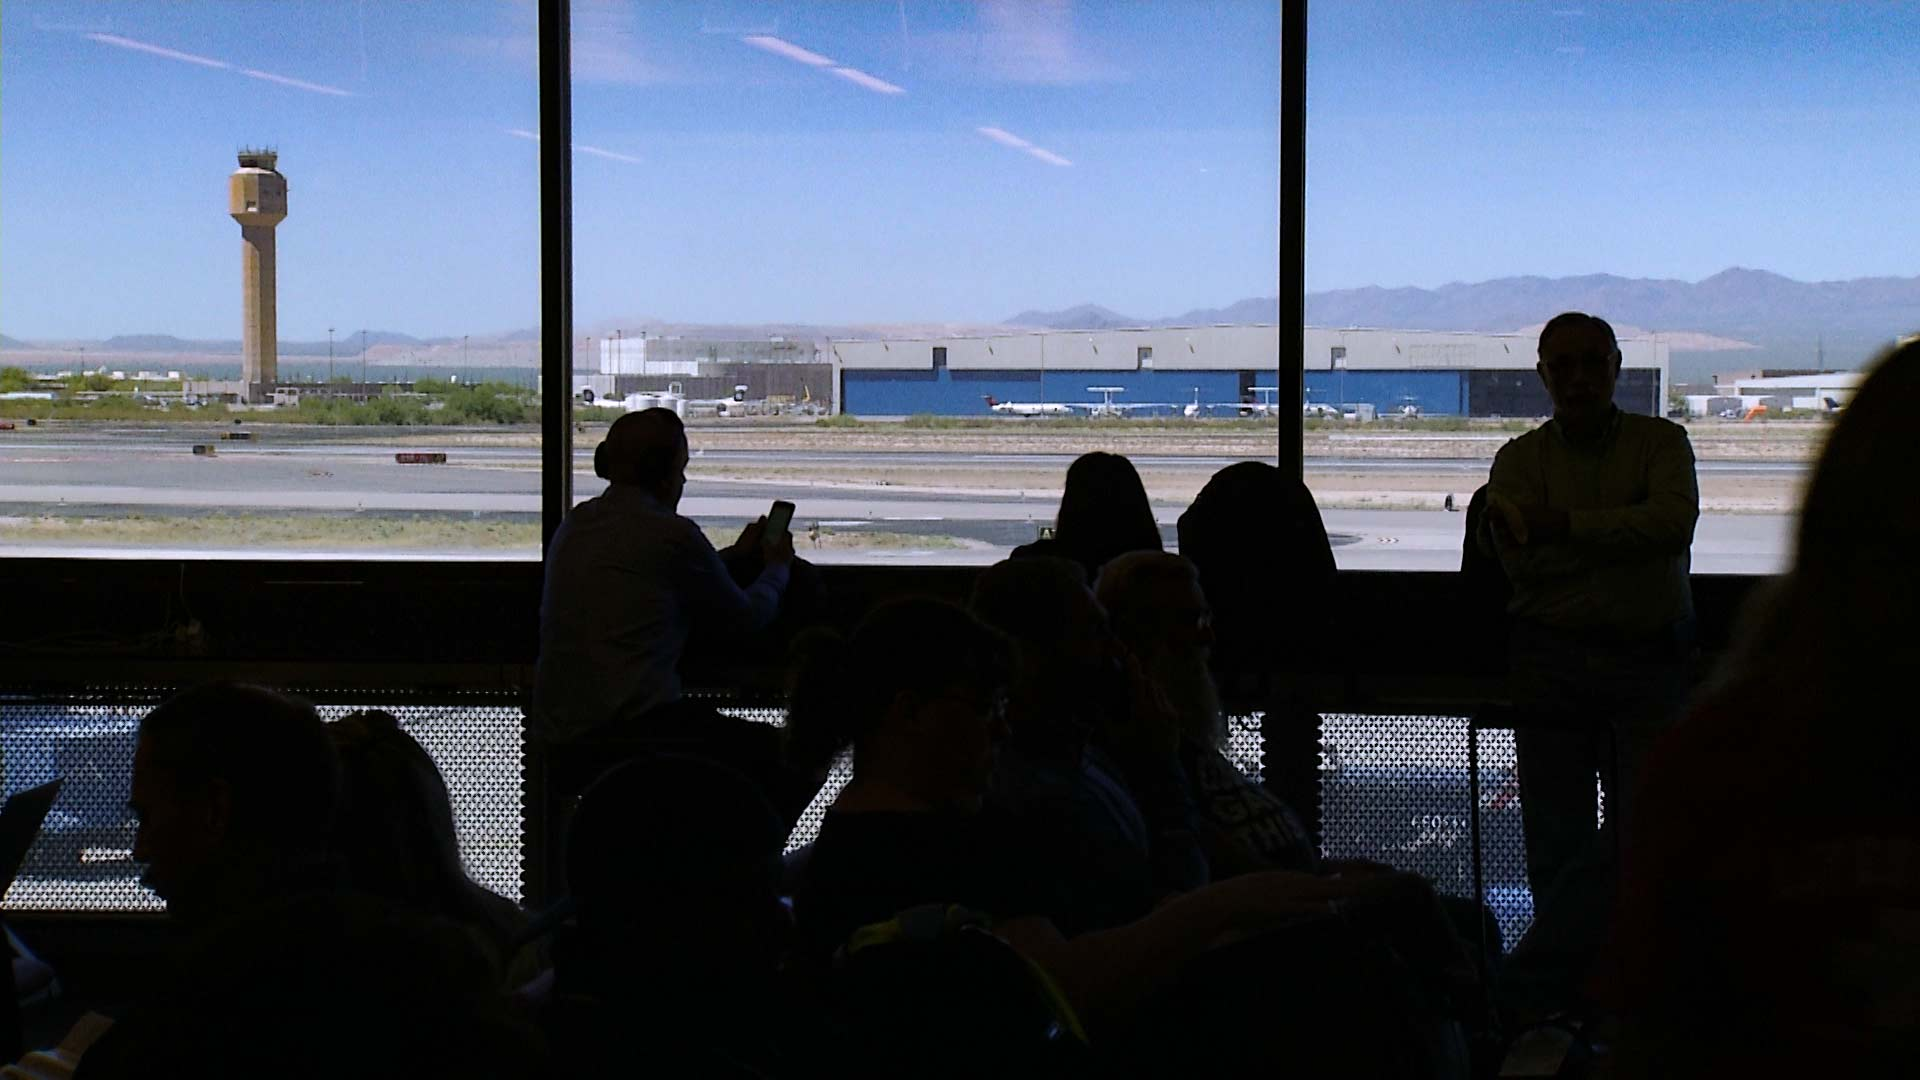 Looking out at the tower at the Tucson International Airport.